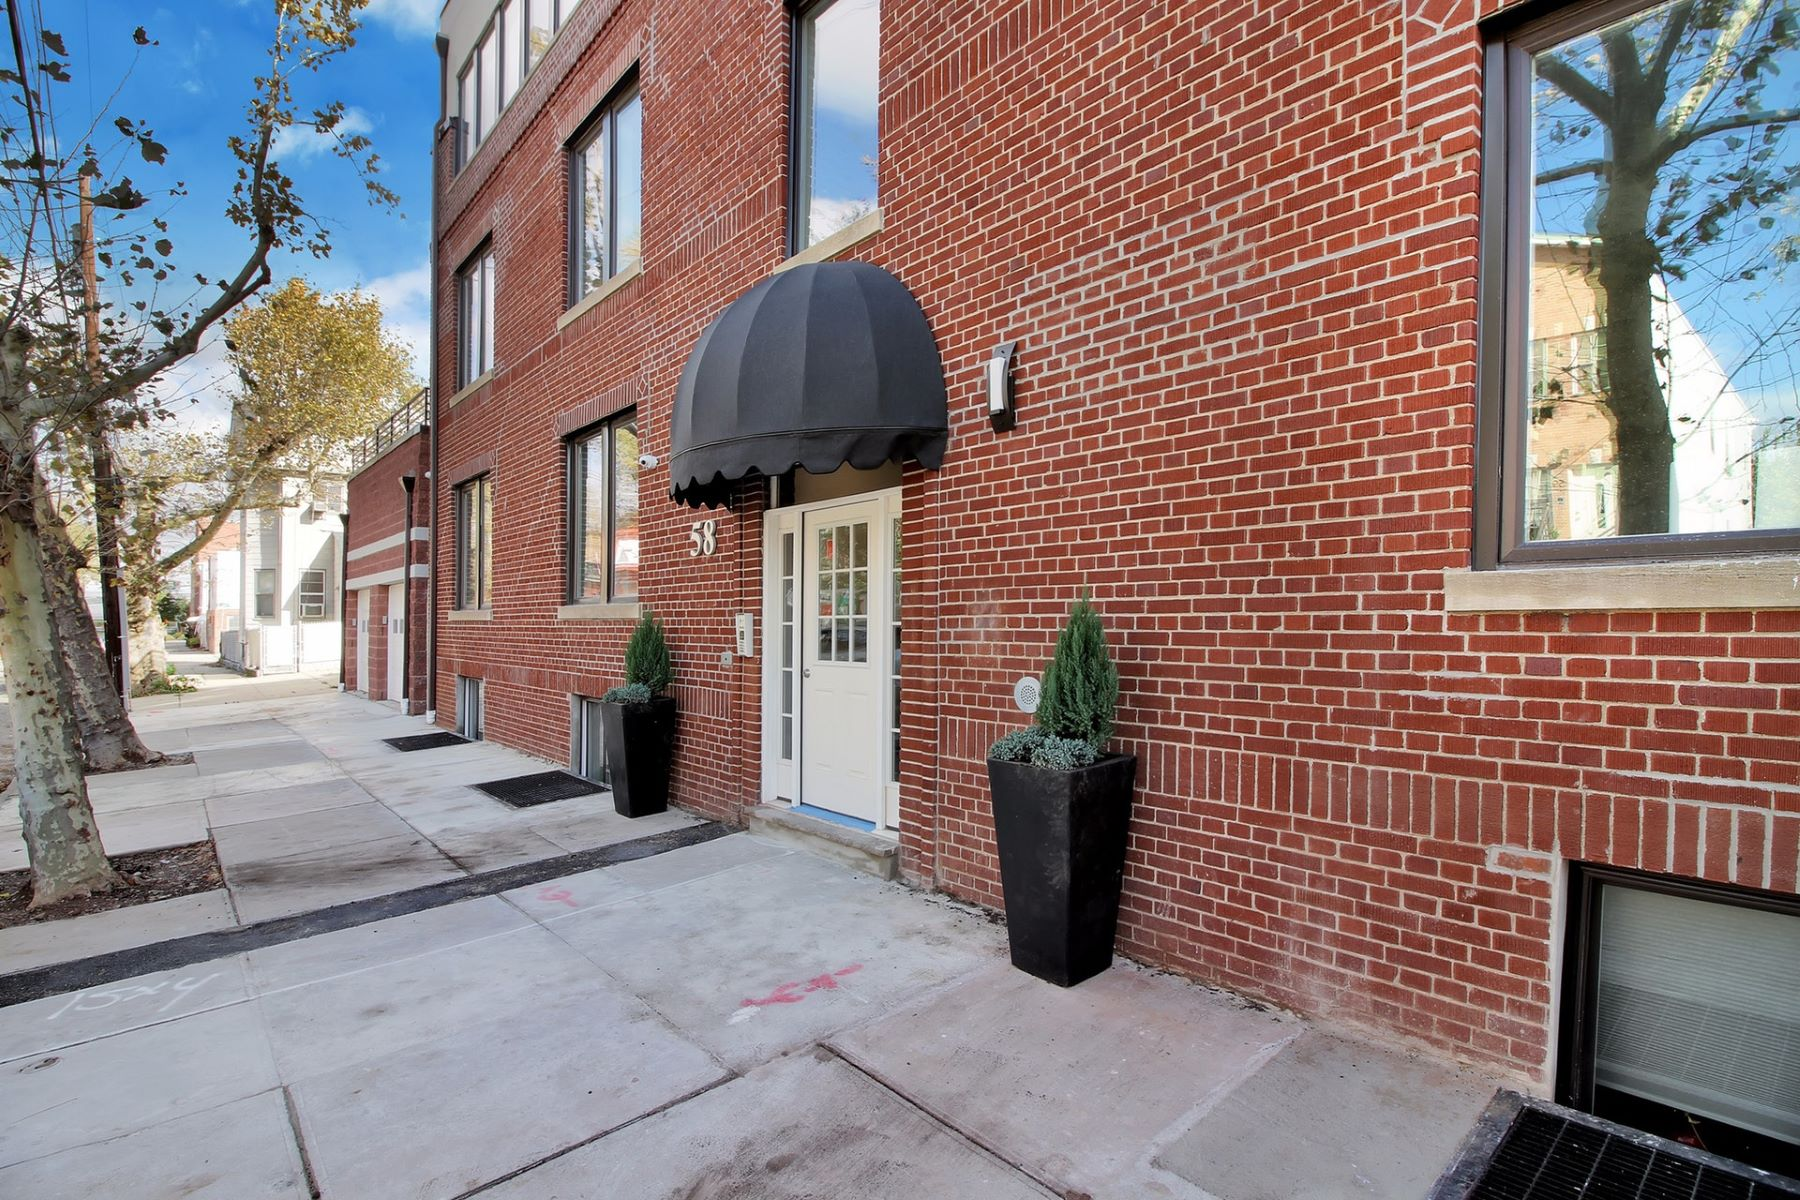 Condominium for Sale at Urban Living 58 Giles Avenue, #4, Jersey City, New Jersey, 07306 United States